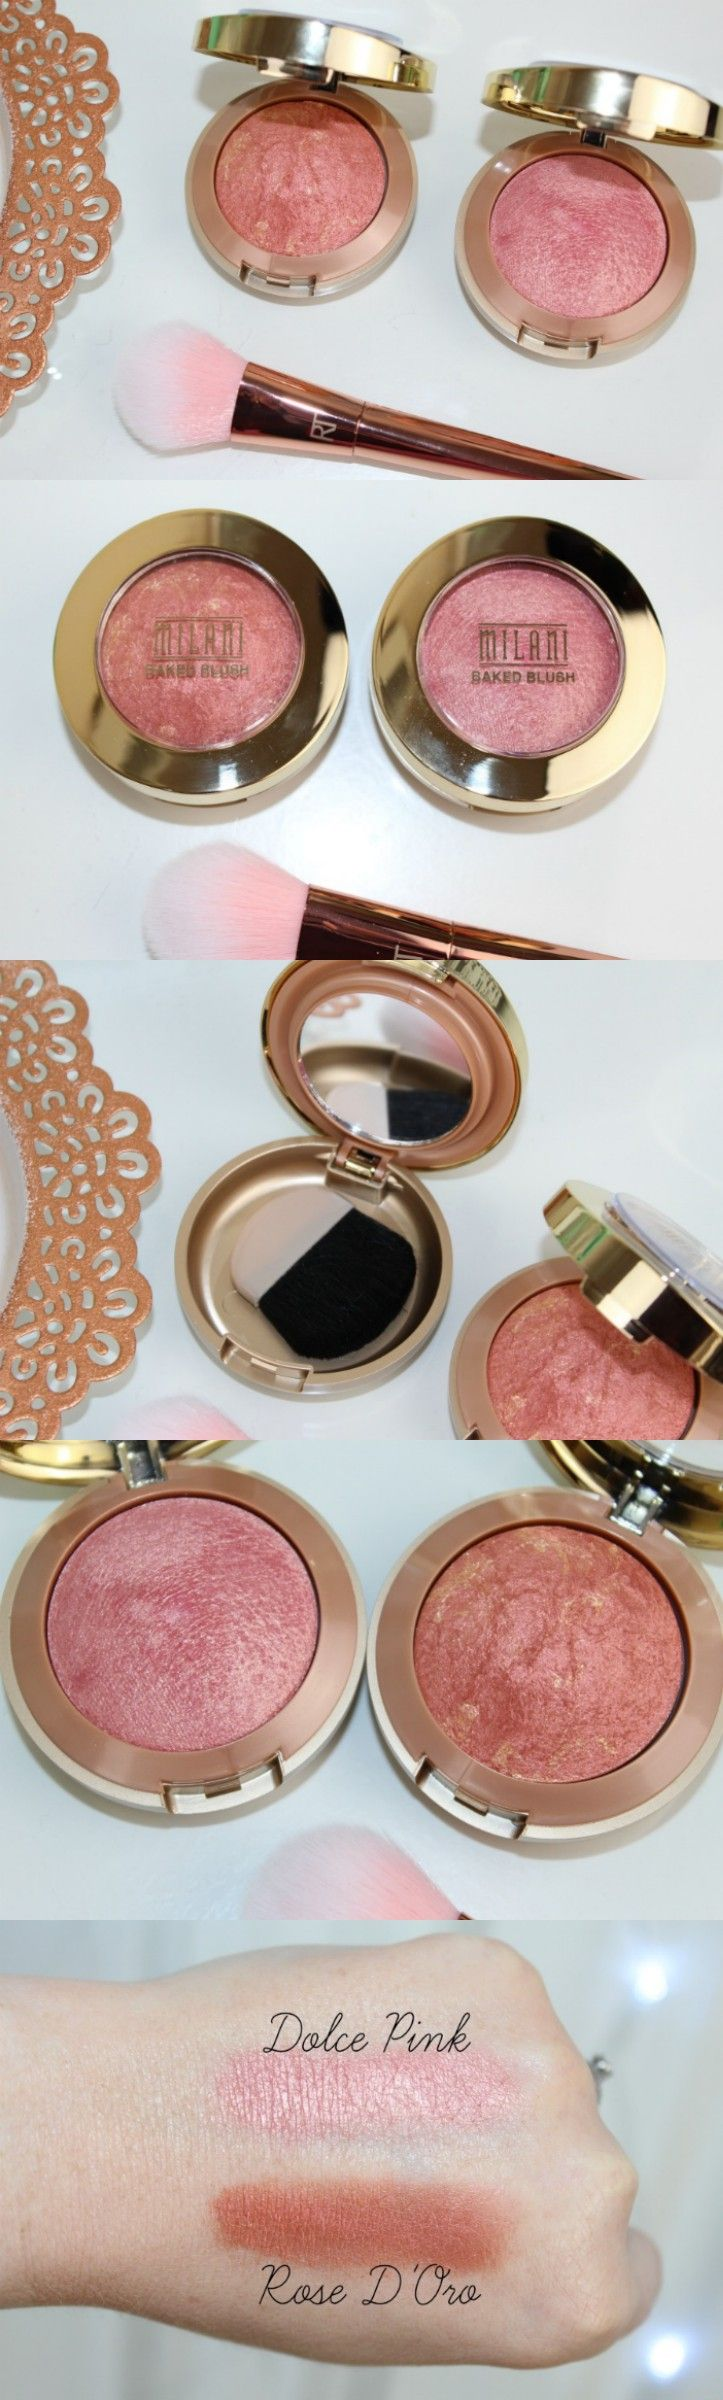 Milani Baked Blush Review & Photos. Take a look at this makeup product your can easily find in the drugstore and a cheap price. Add it to your makeup kit and/or collection.